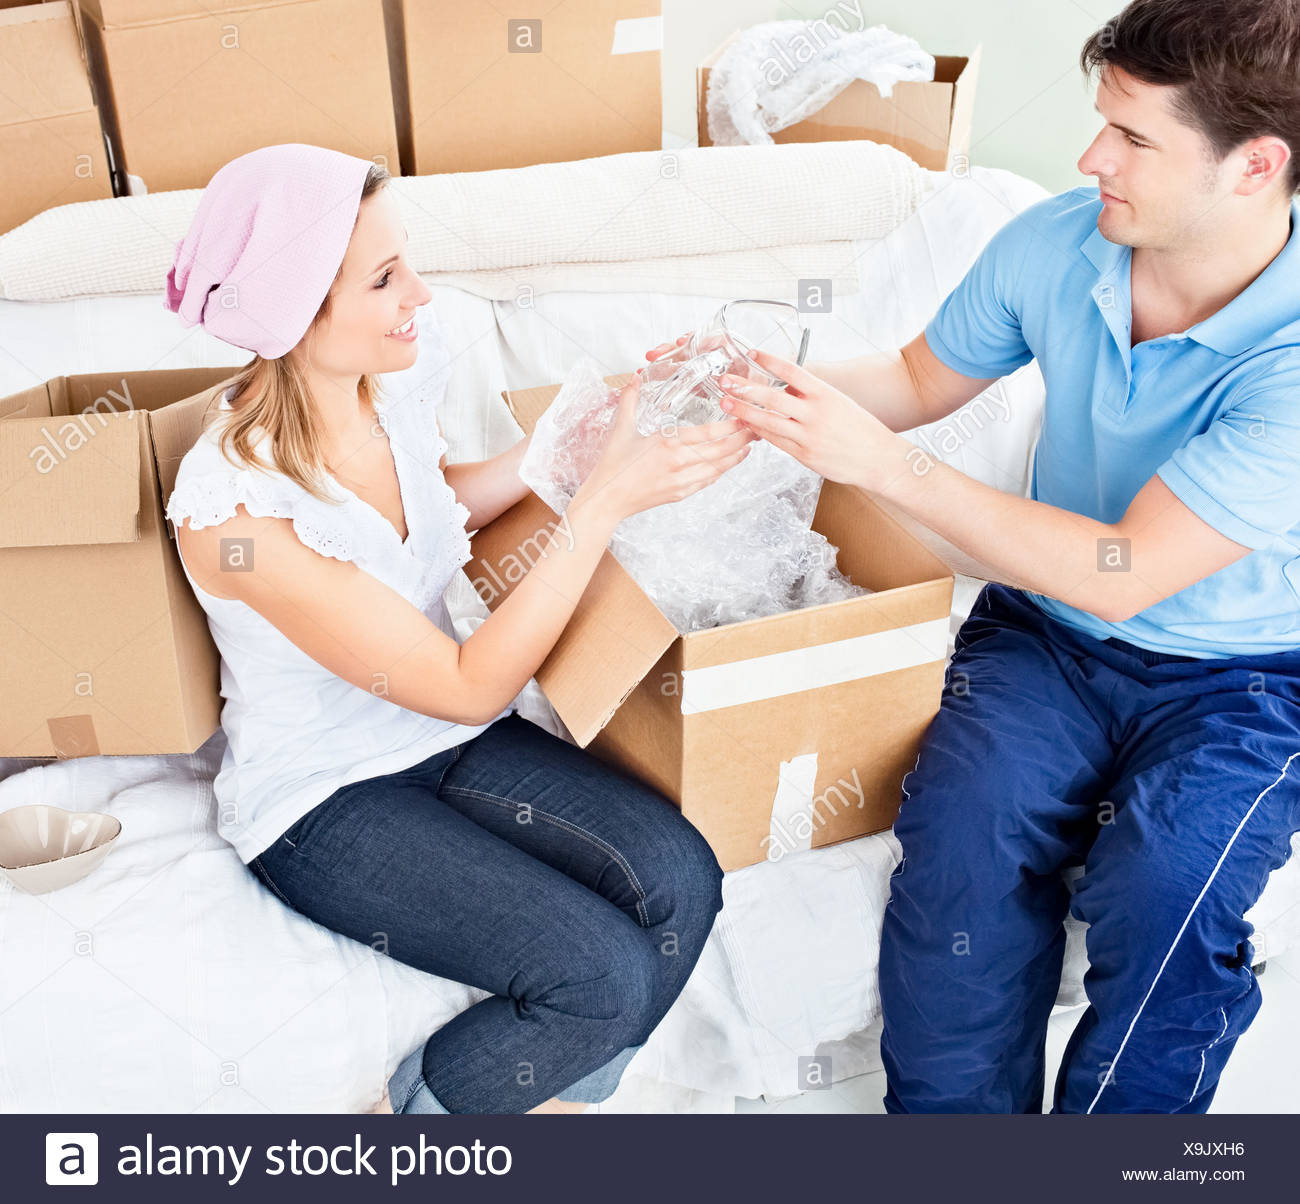 Affectionate young couple unpacking boxes with glasses - Stock Image